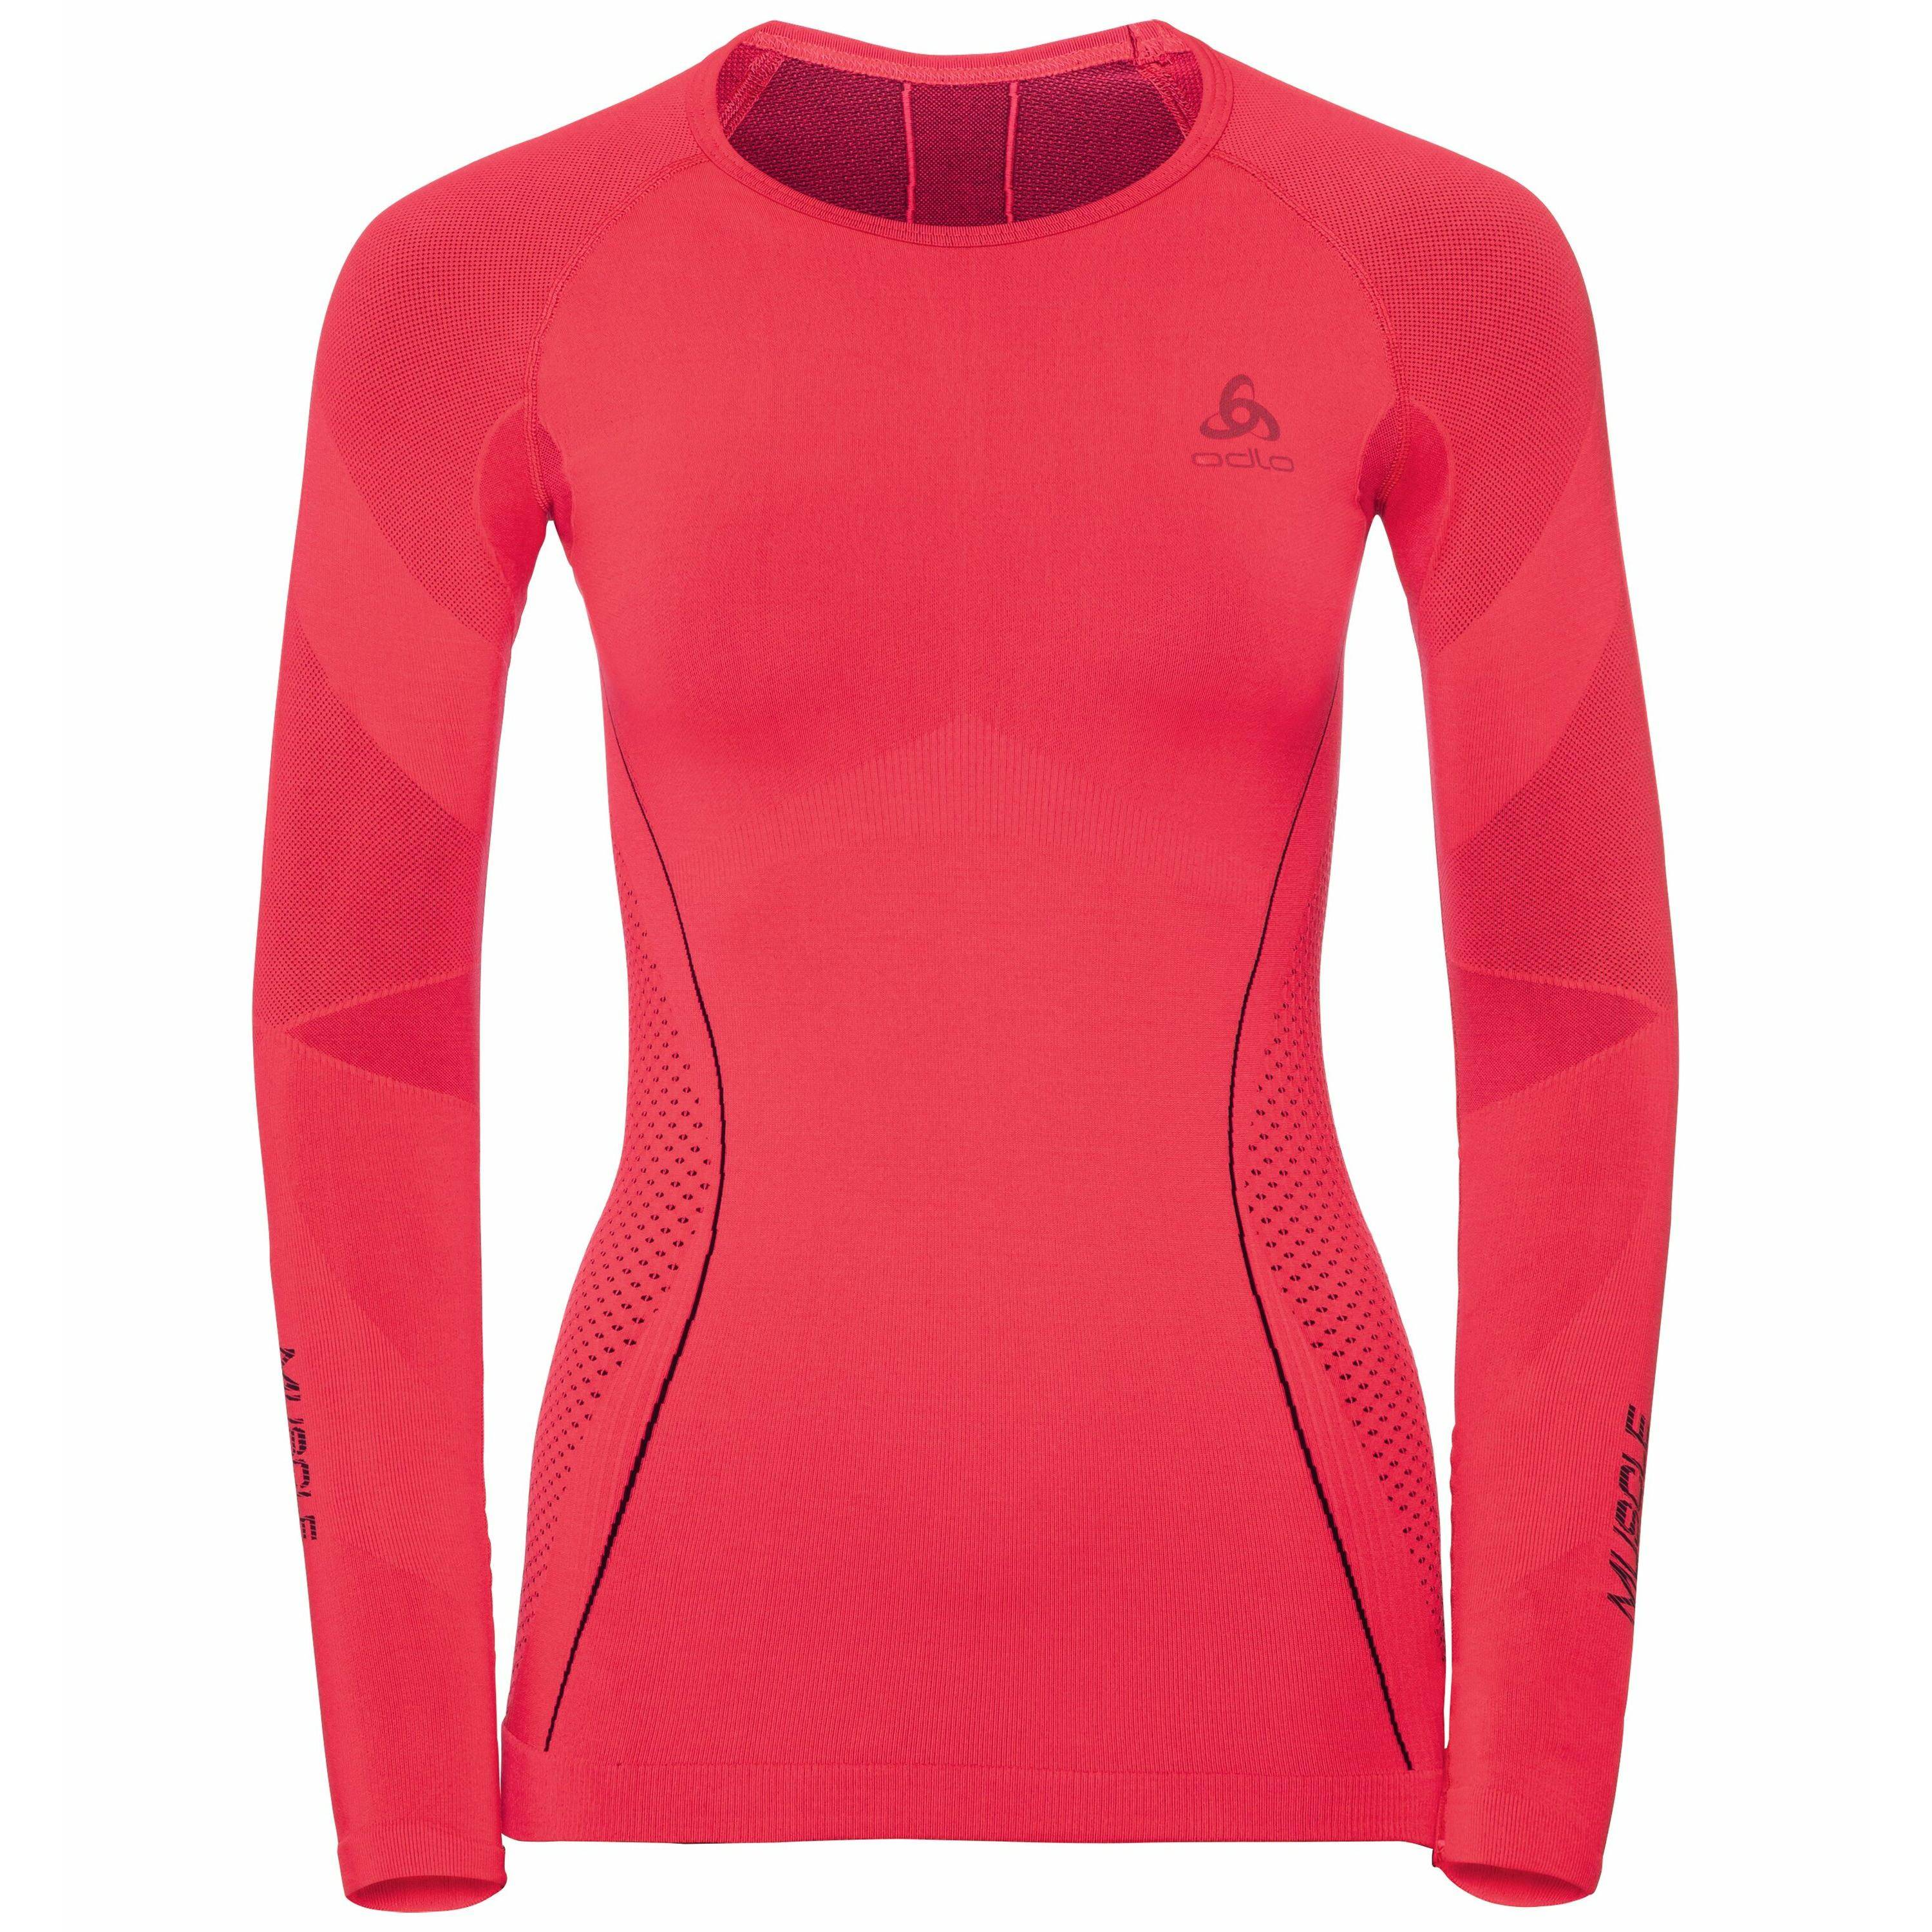 Odlo SVS top col ras du cou manches longues Performance MUSCLE FORCE RUNNING Warm diva pink - odyssey gray taille: XL